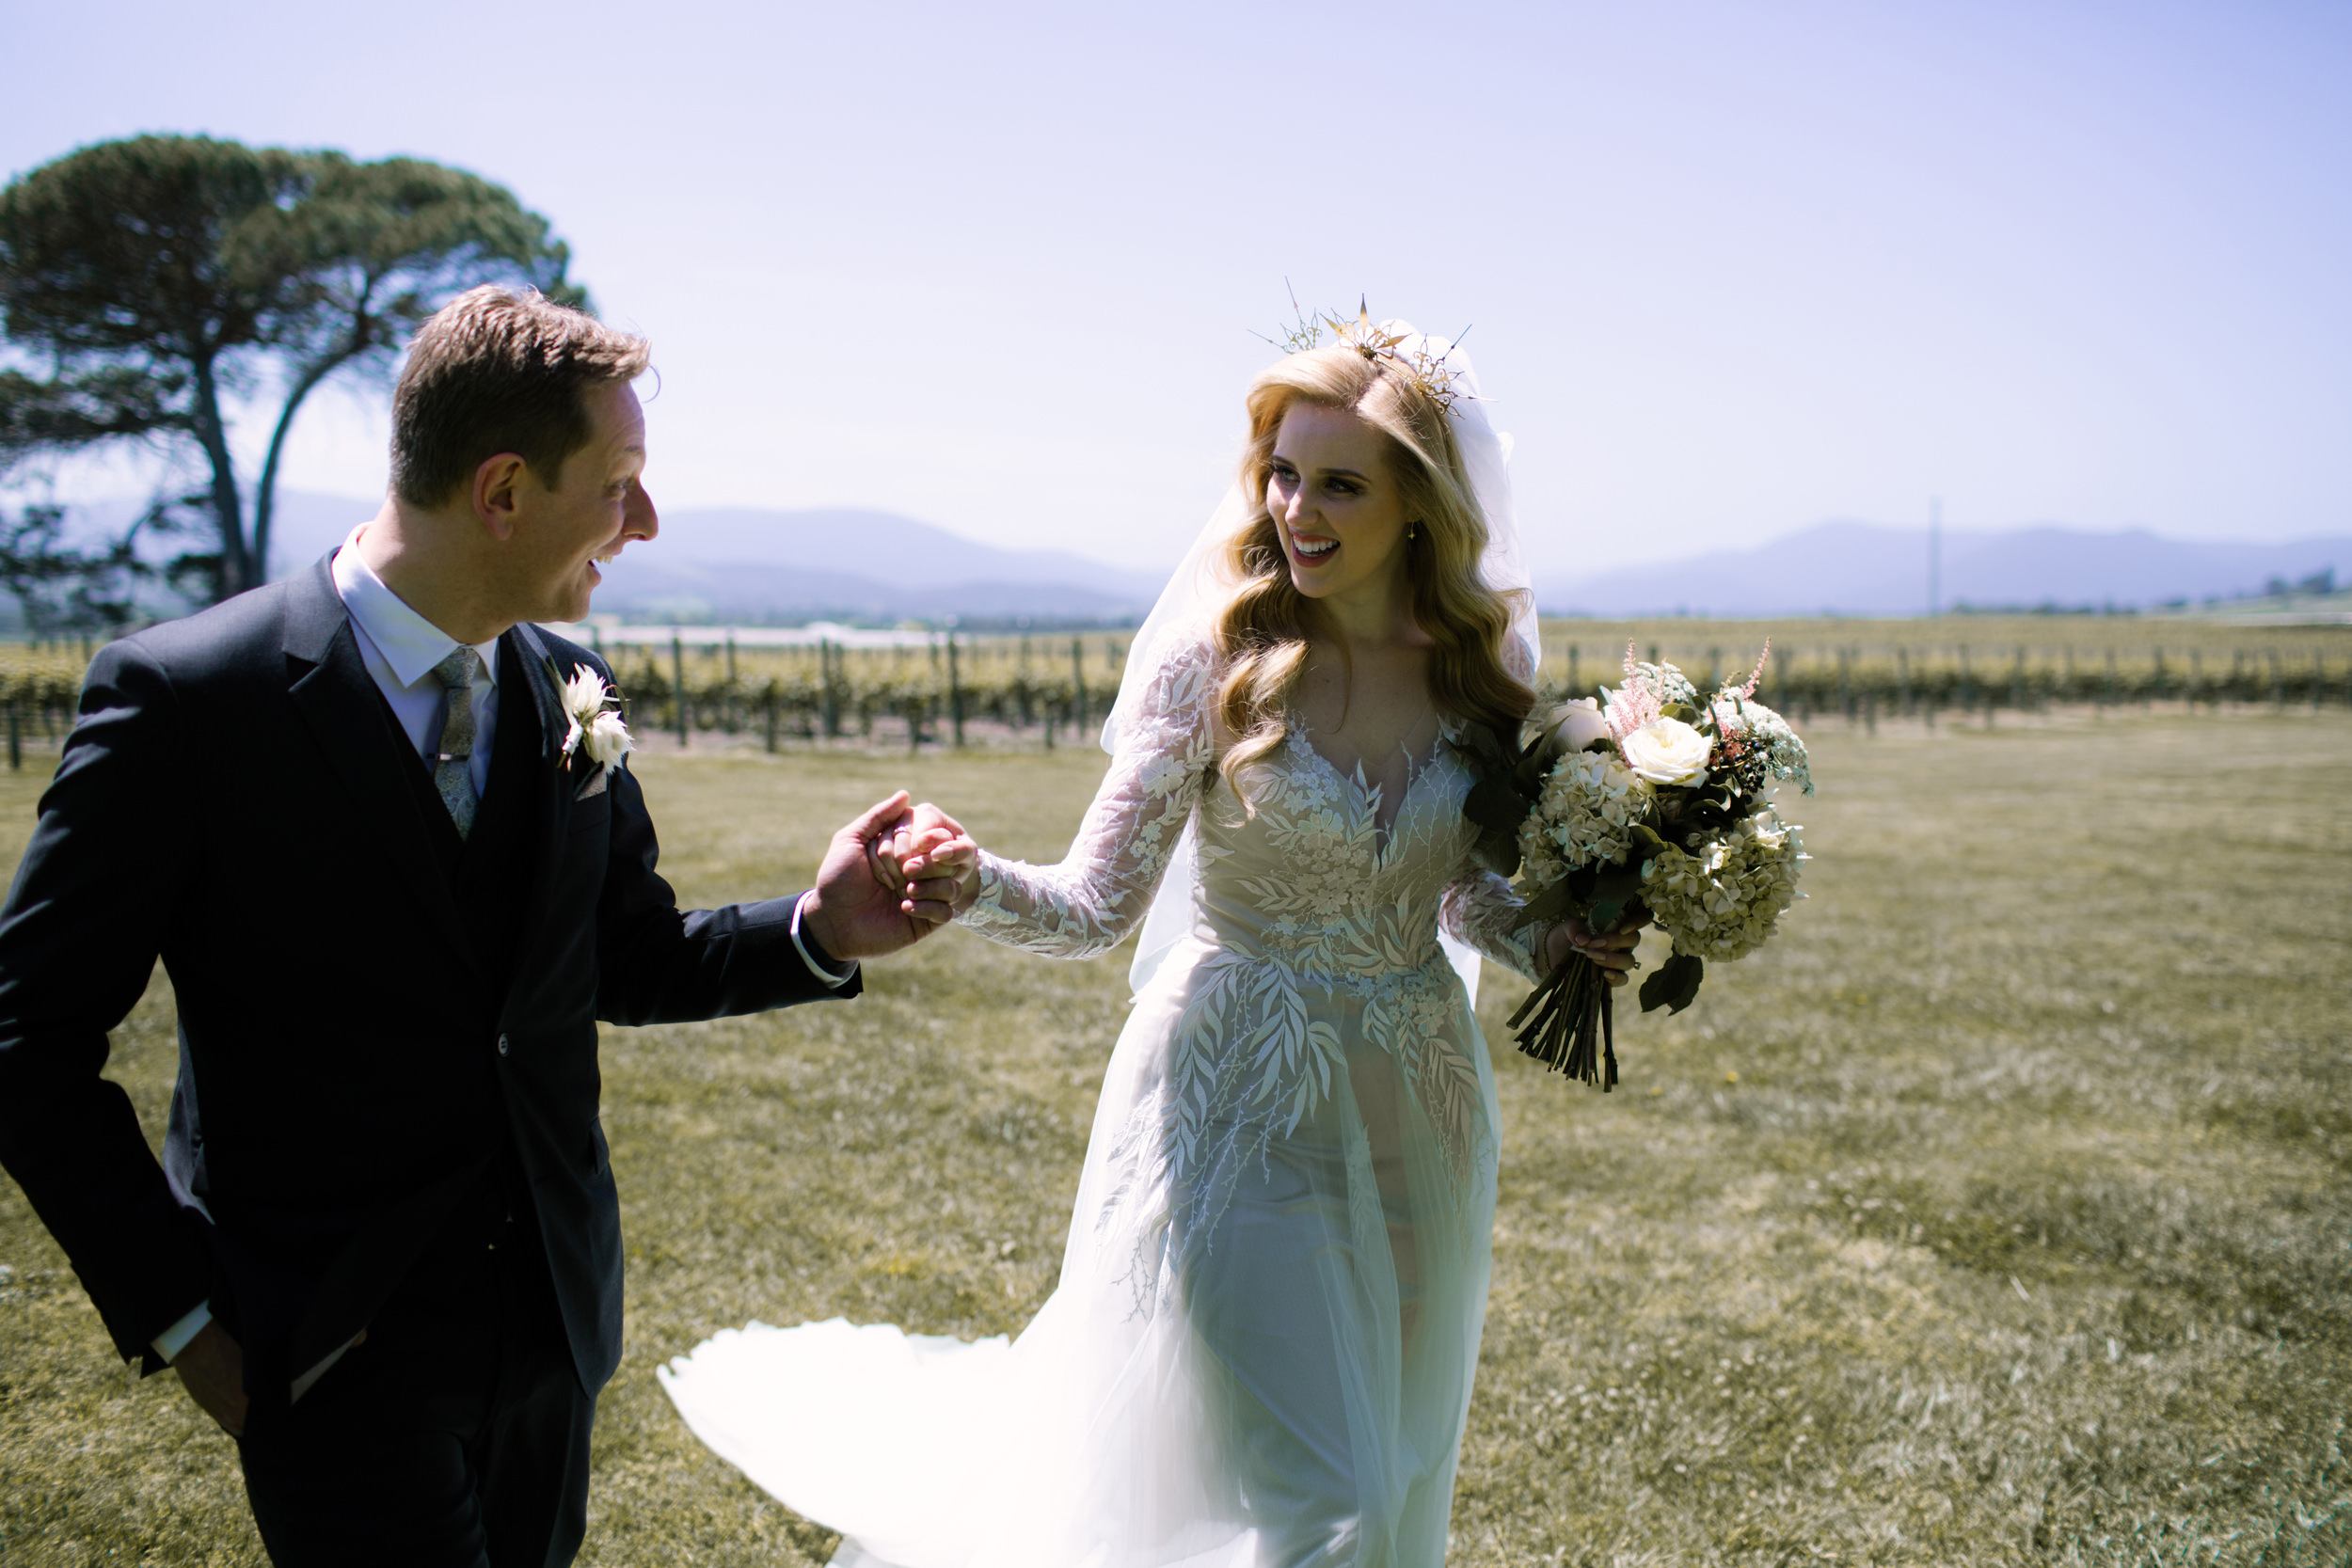 I-Got-You-Babe-&.Co.-Stones-of-the-Yarra-Valley-Wedding-Beverly-Ross0112.JPG